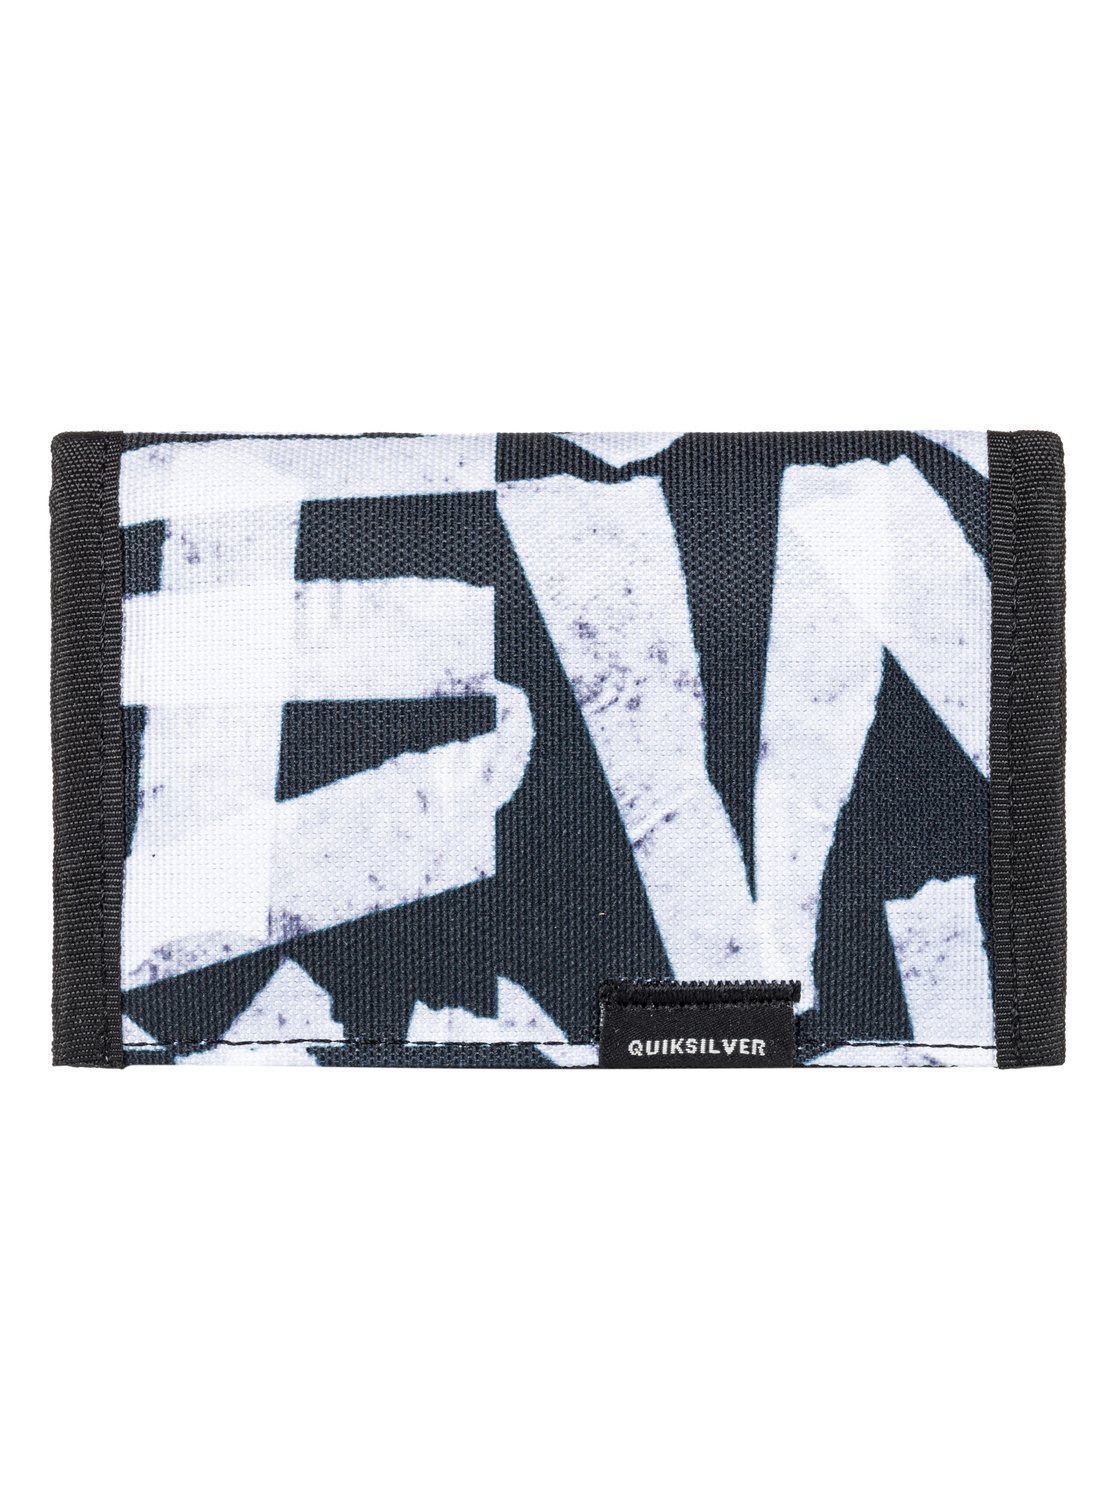 Quiksilver The Everydaily Monedero, 15 cm, Bright White